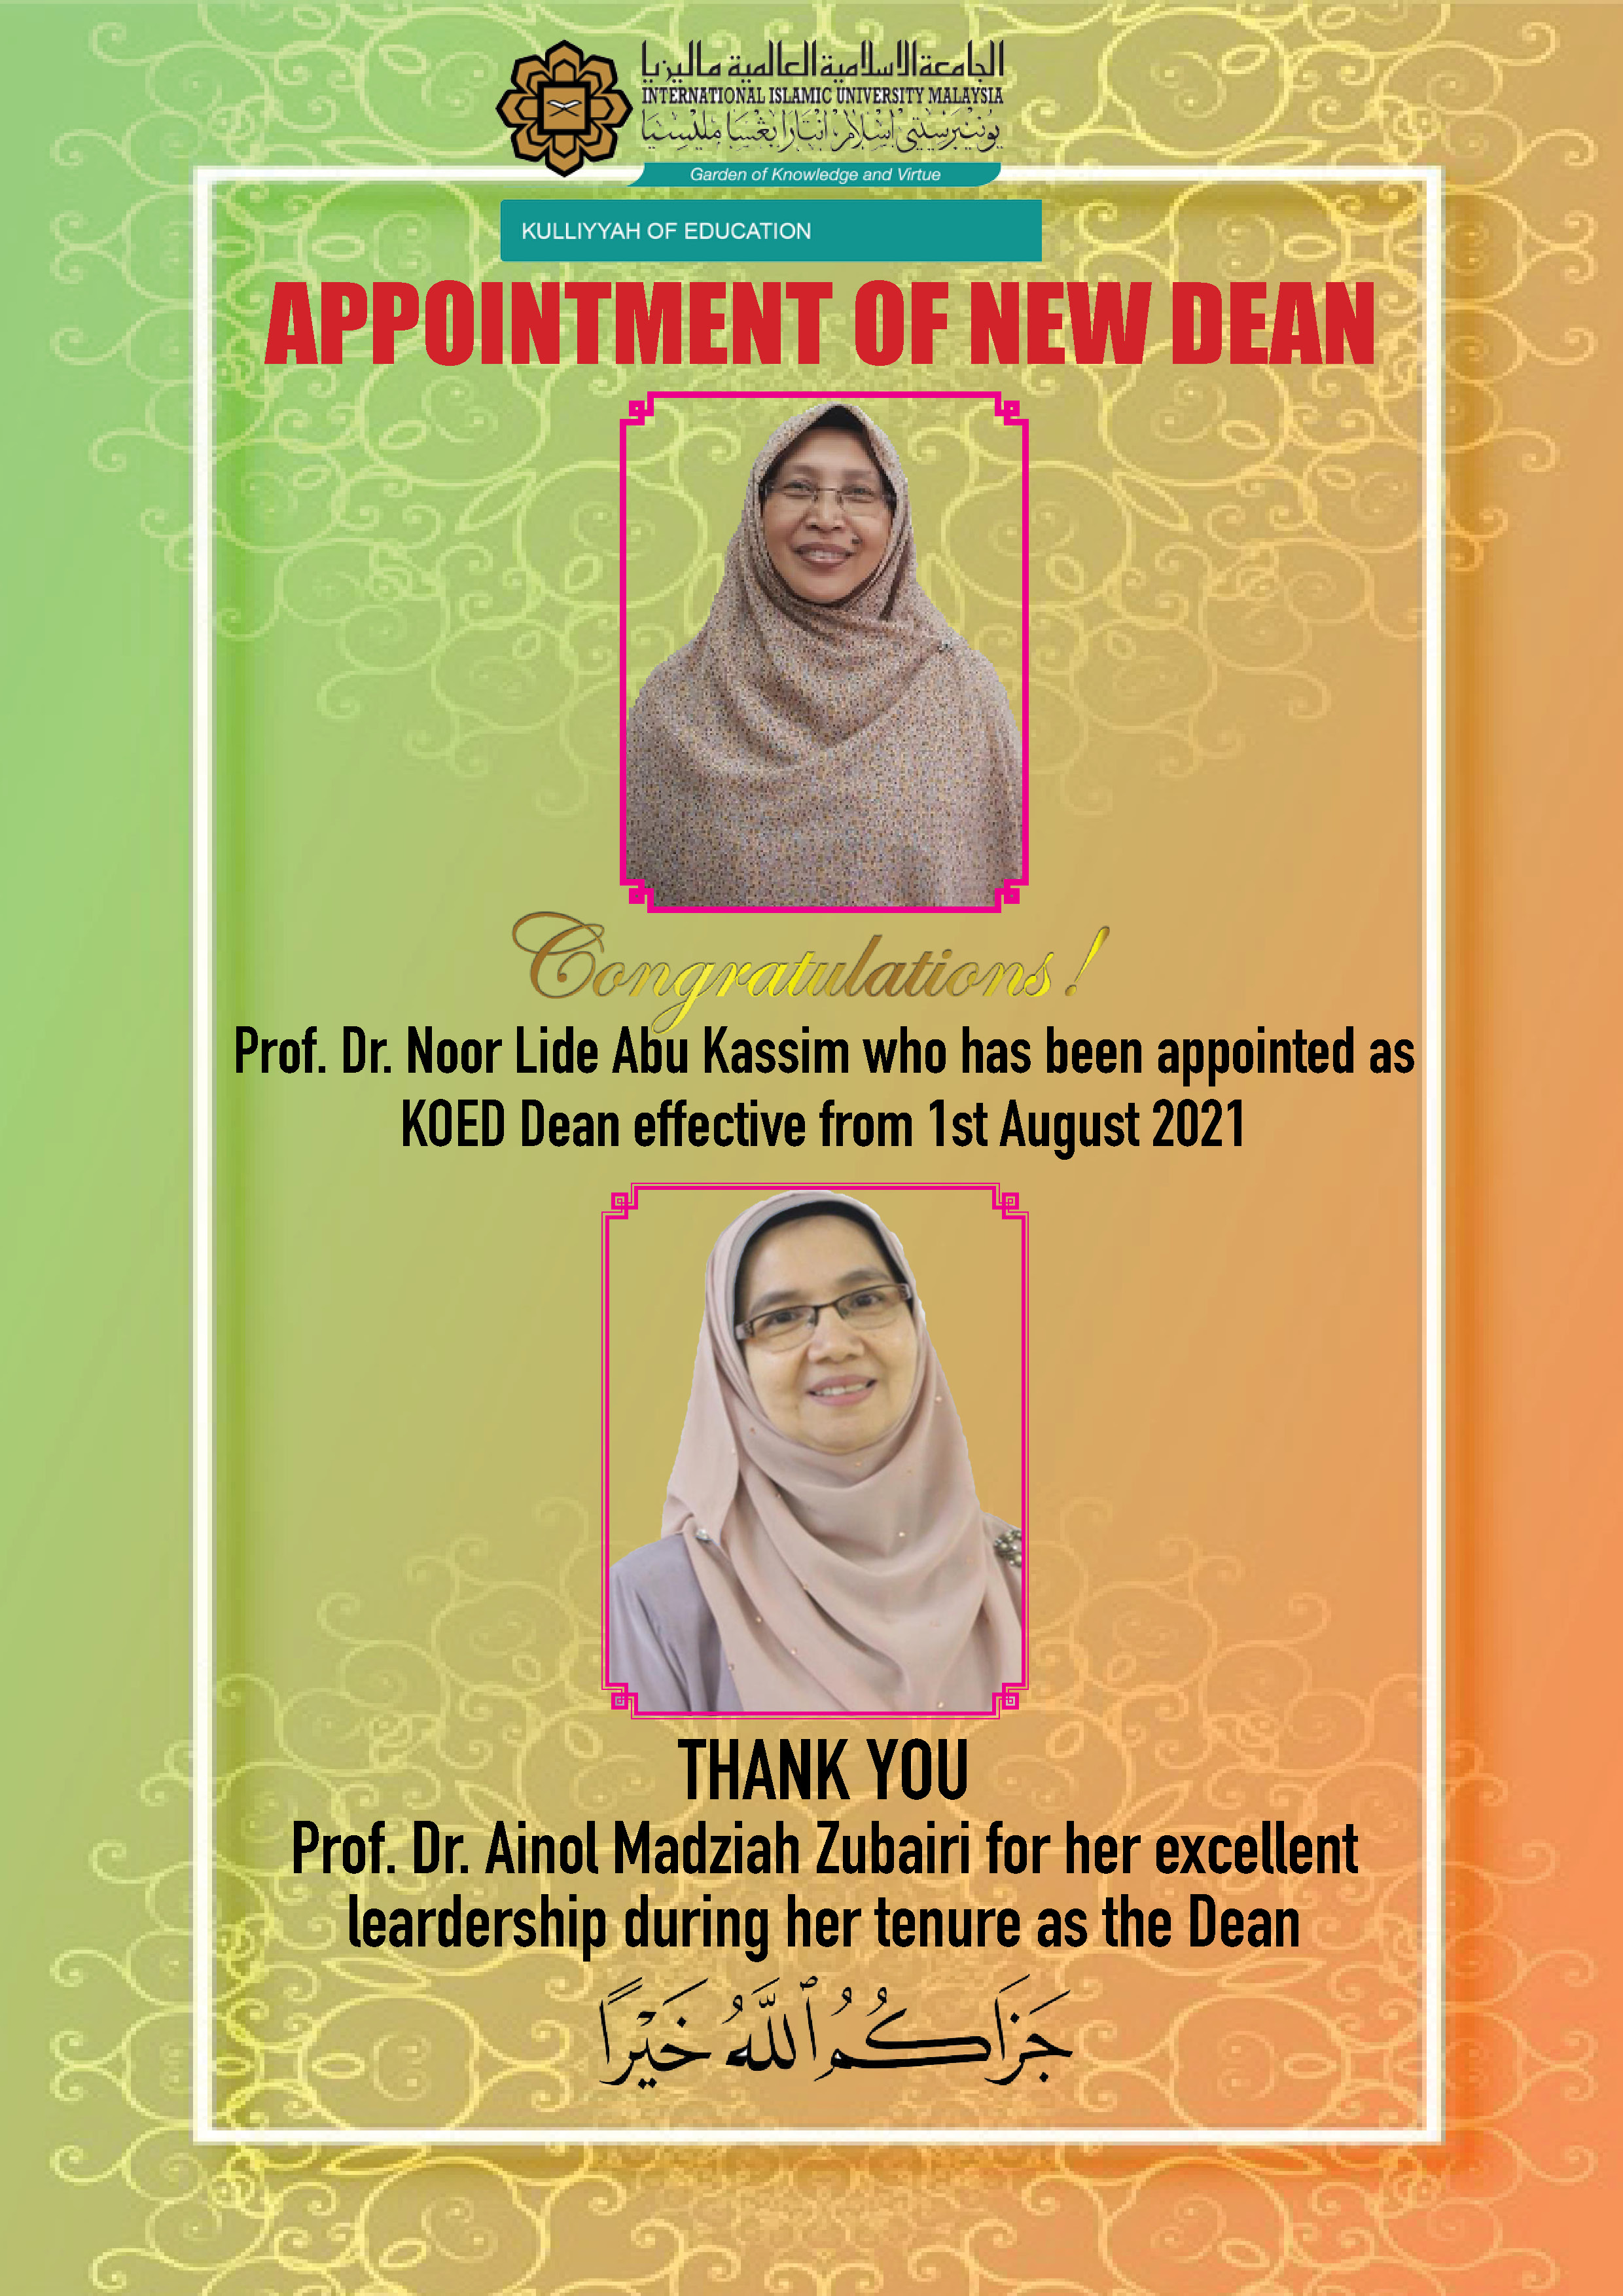 APPOINMENT OF NEW DEAN